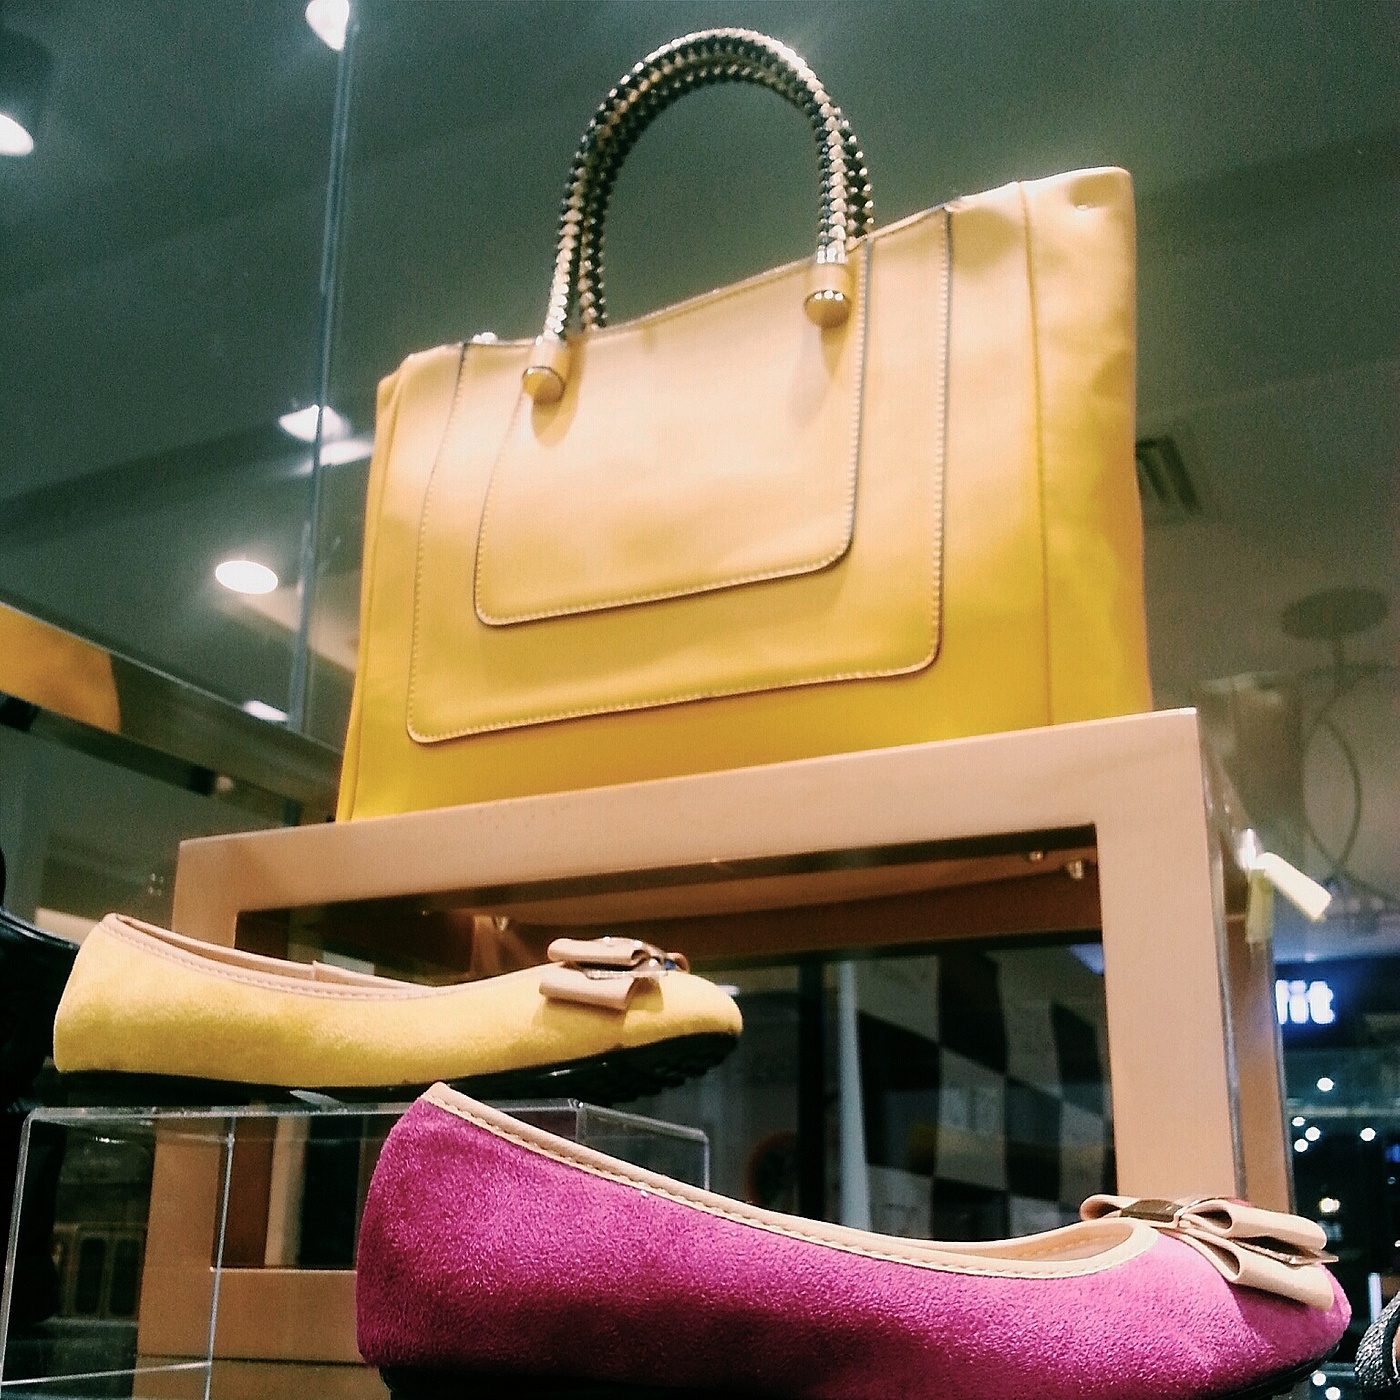 C'NTRO shoes and bags by centropelle at the fairview terraces